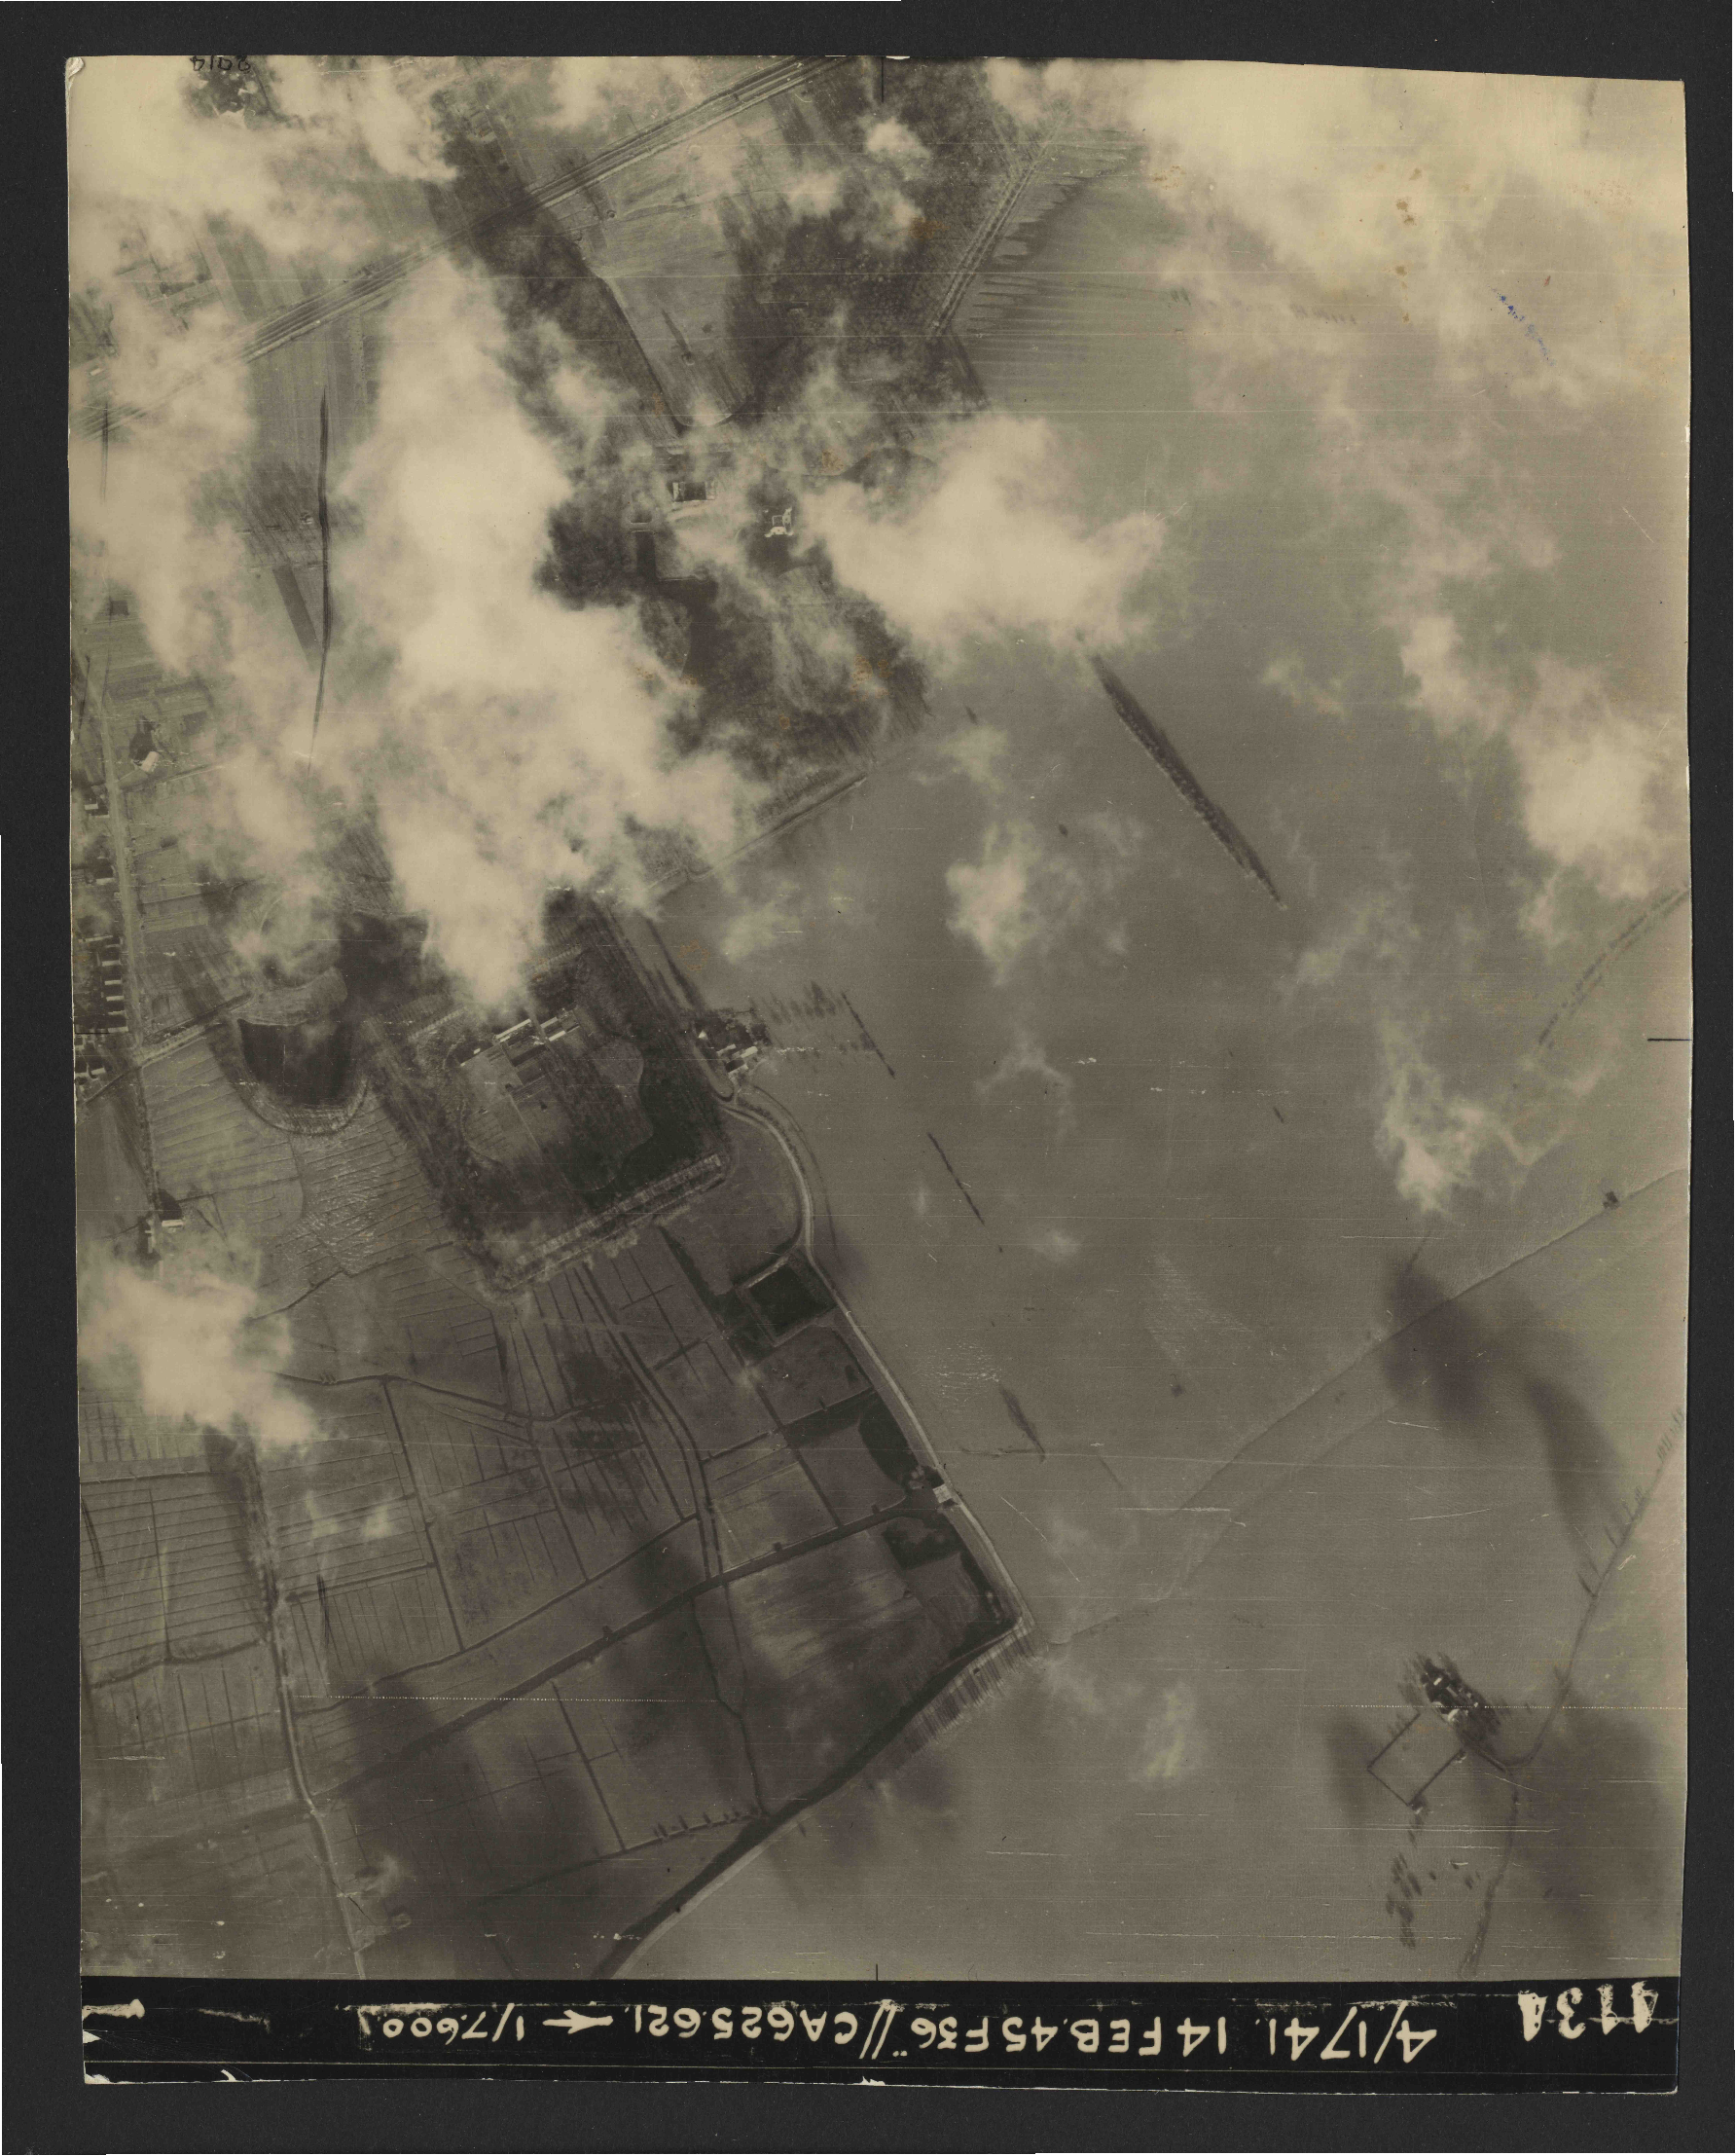 Collection RAF aerial photos 1940-1945 - flight 132, run 03, photo 4134